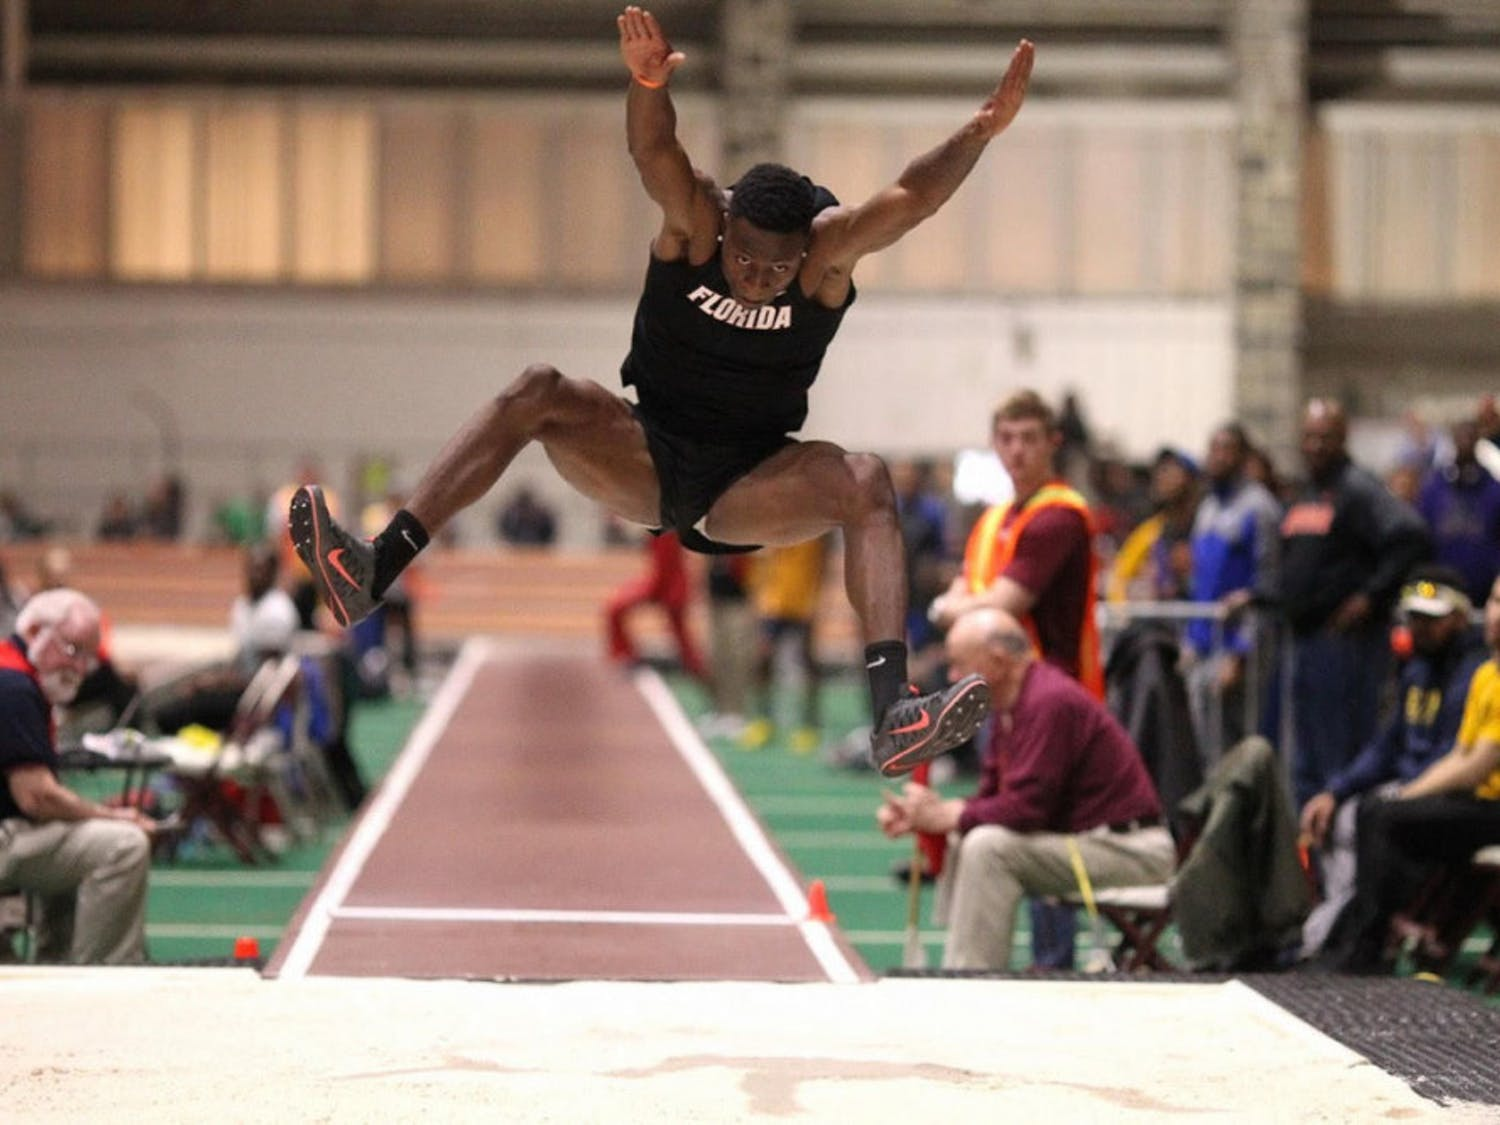 Sophomore Grant Holloway and the No. 1 men's track team will join the No. 6 women's track team on a road trip to a pair of meets over the weekend.